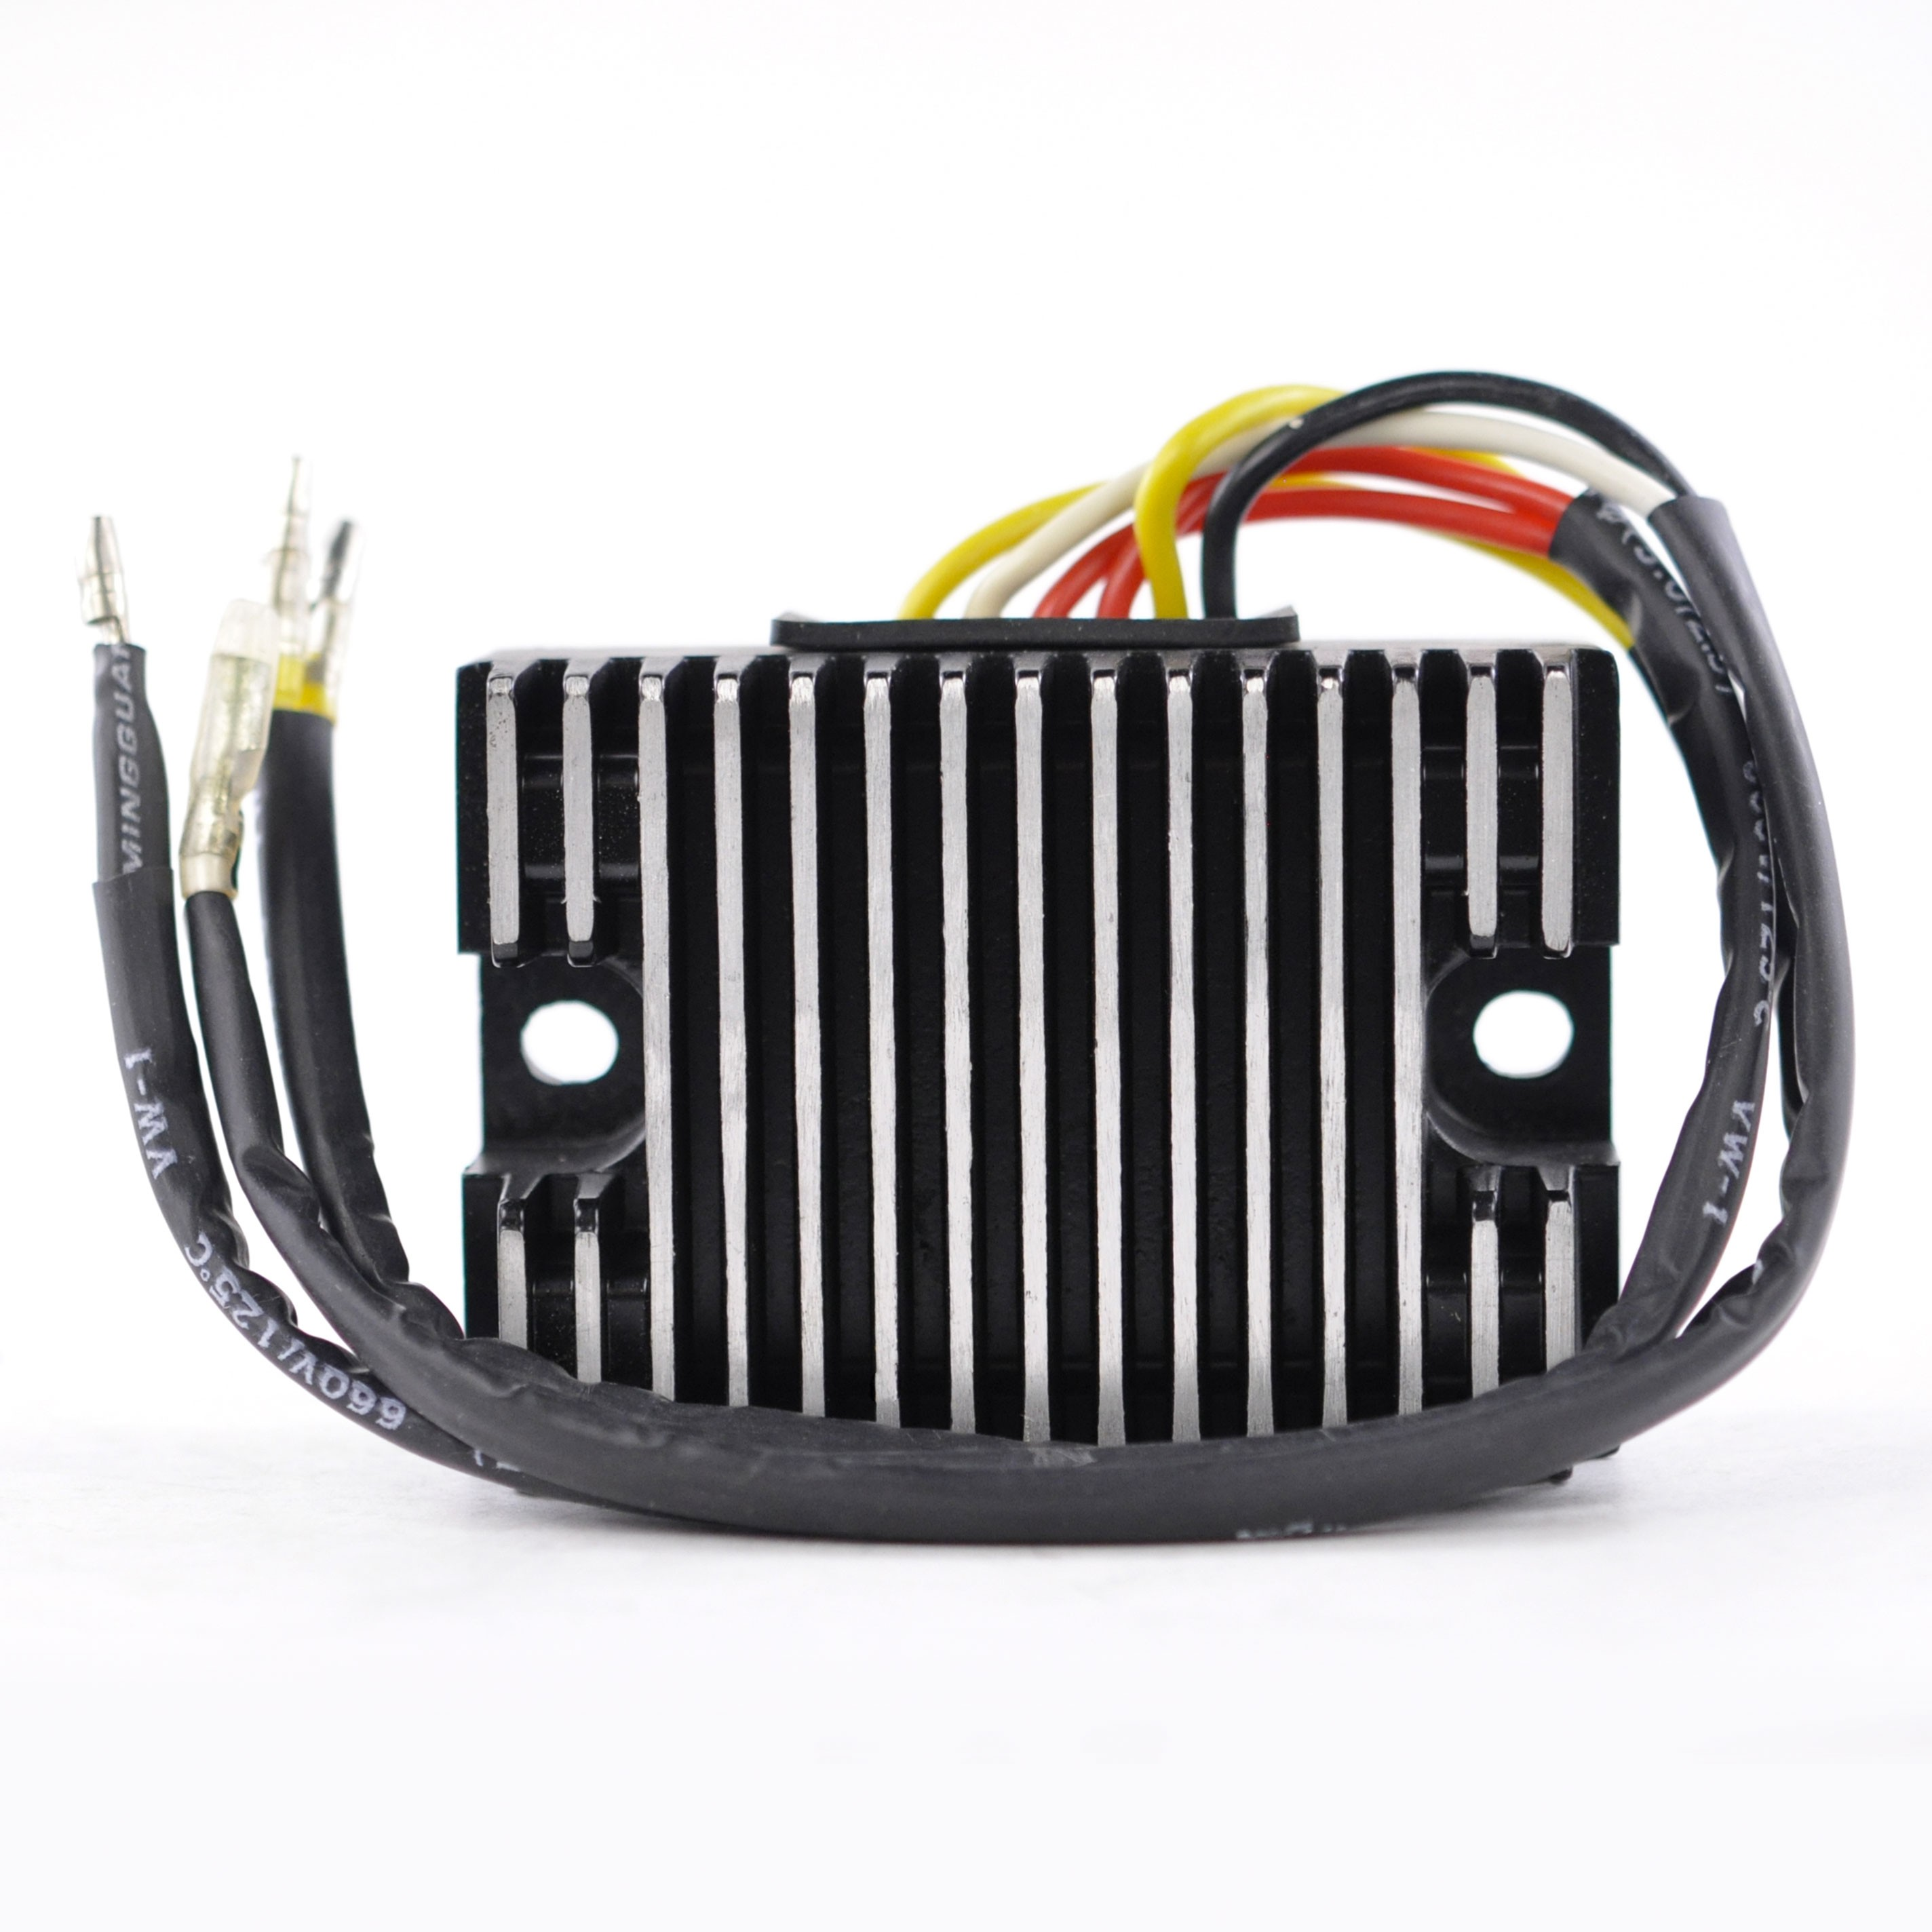 Motorcycle 1992 Ducati 907 Paso Ie Rmstator Voltage Regulator Some Help With Finding Components Magneto Rectifier Circuit Sentinel 1986 1998 748 750 851 888 900 906 916